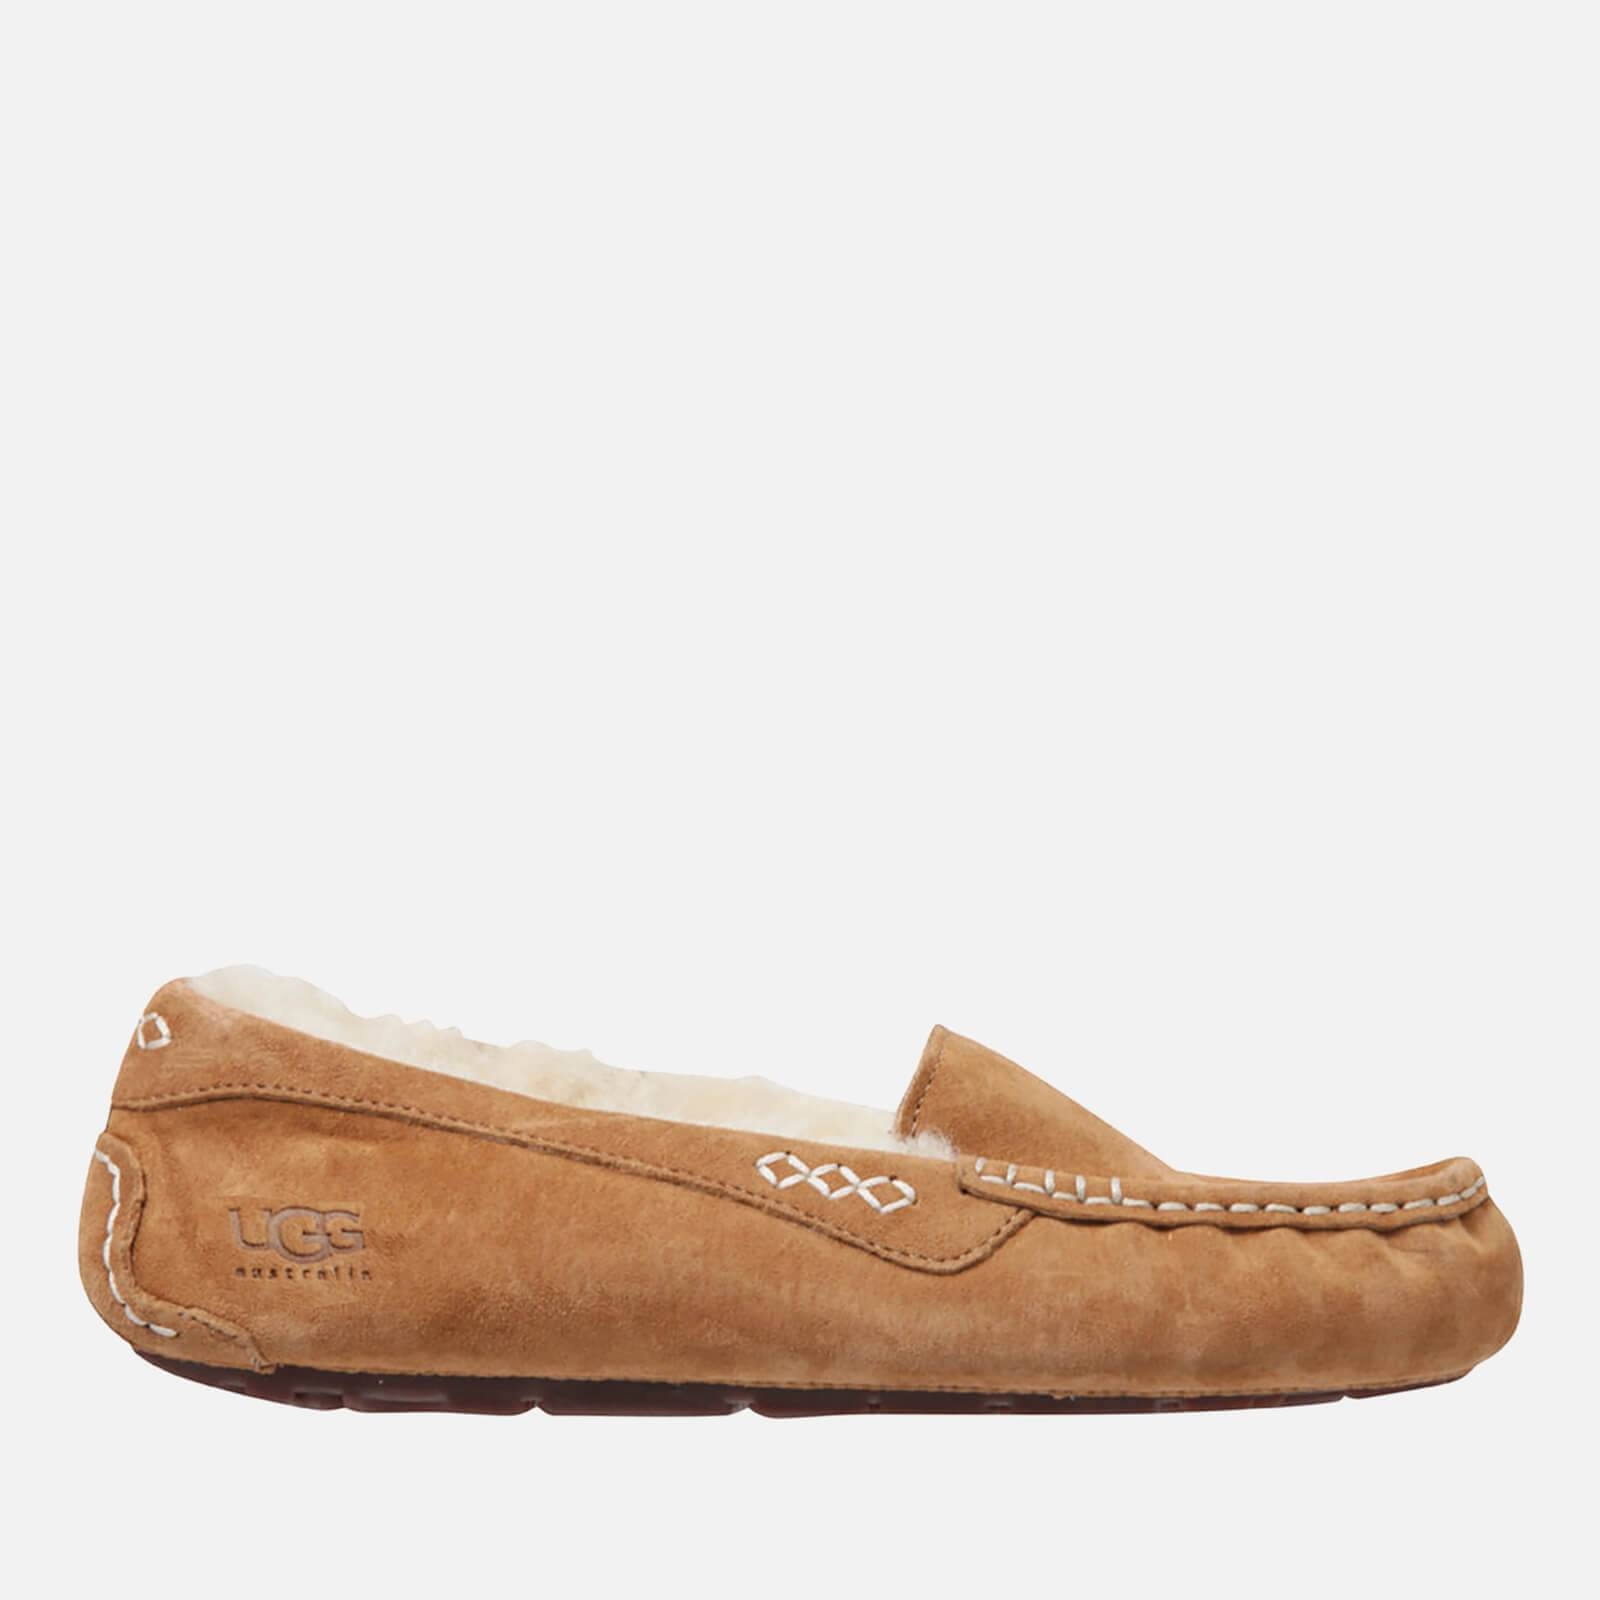 UGG Women's Ansley Moccasin Suede Slippers - Chestnut - UK 3